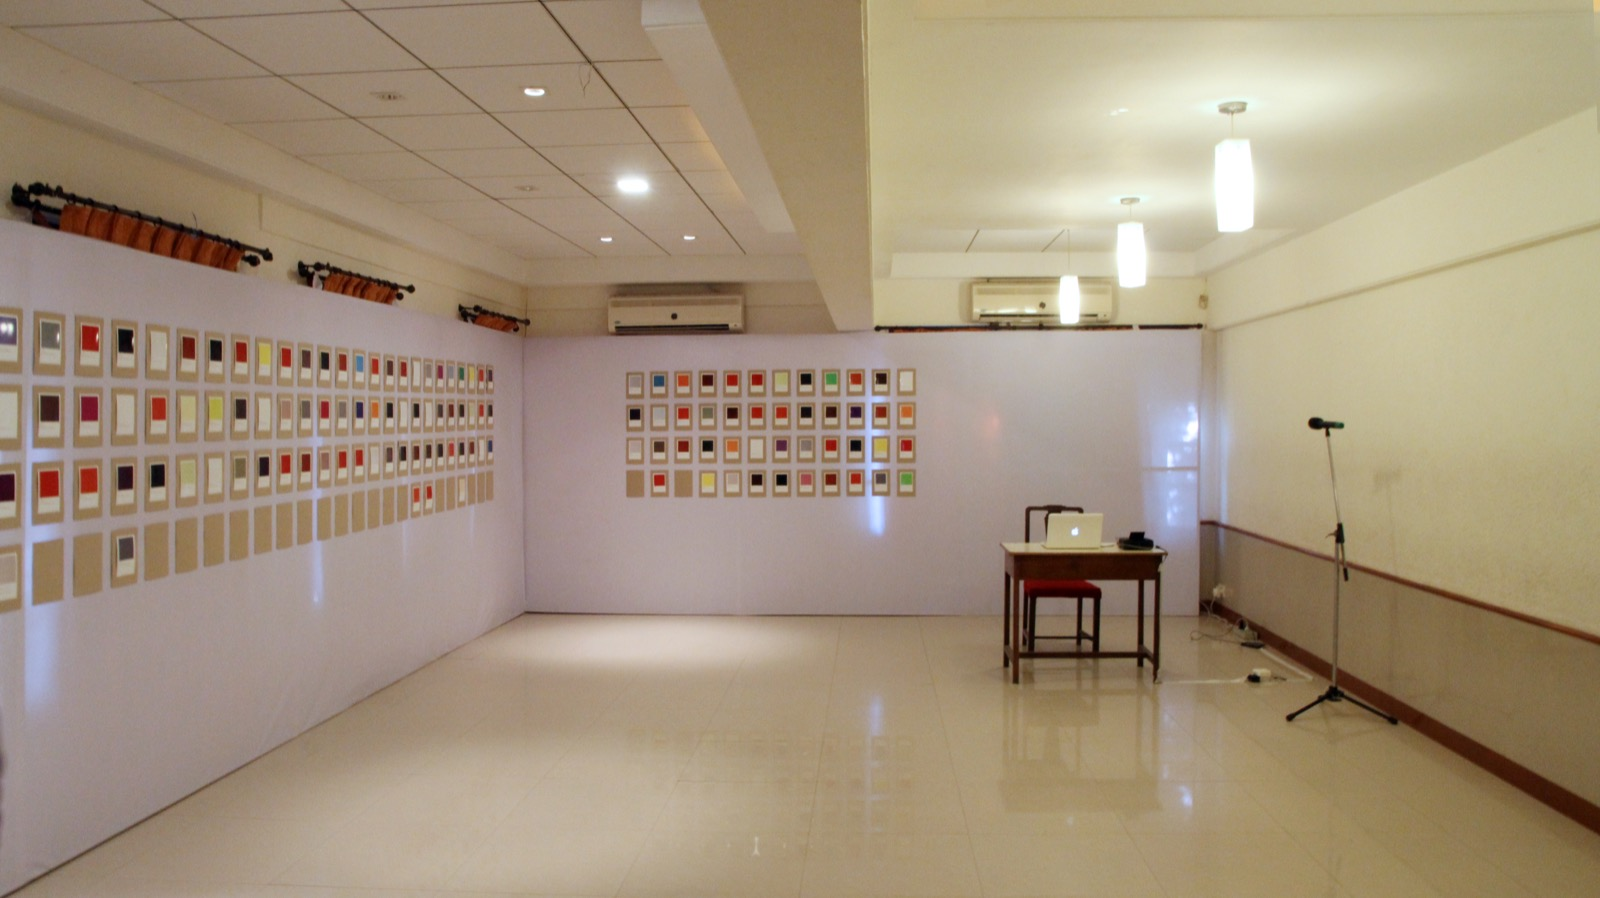 Installation view, Mumbai Assembly, 2017